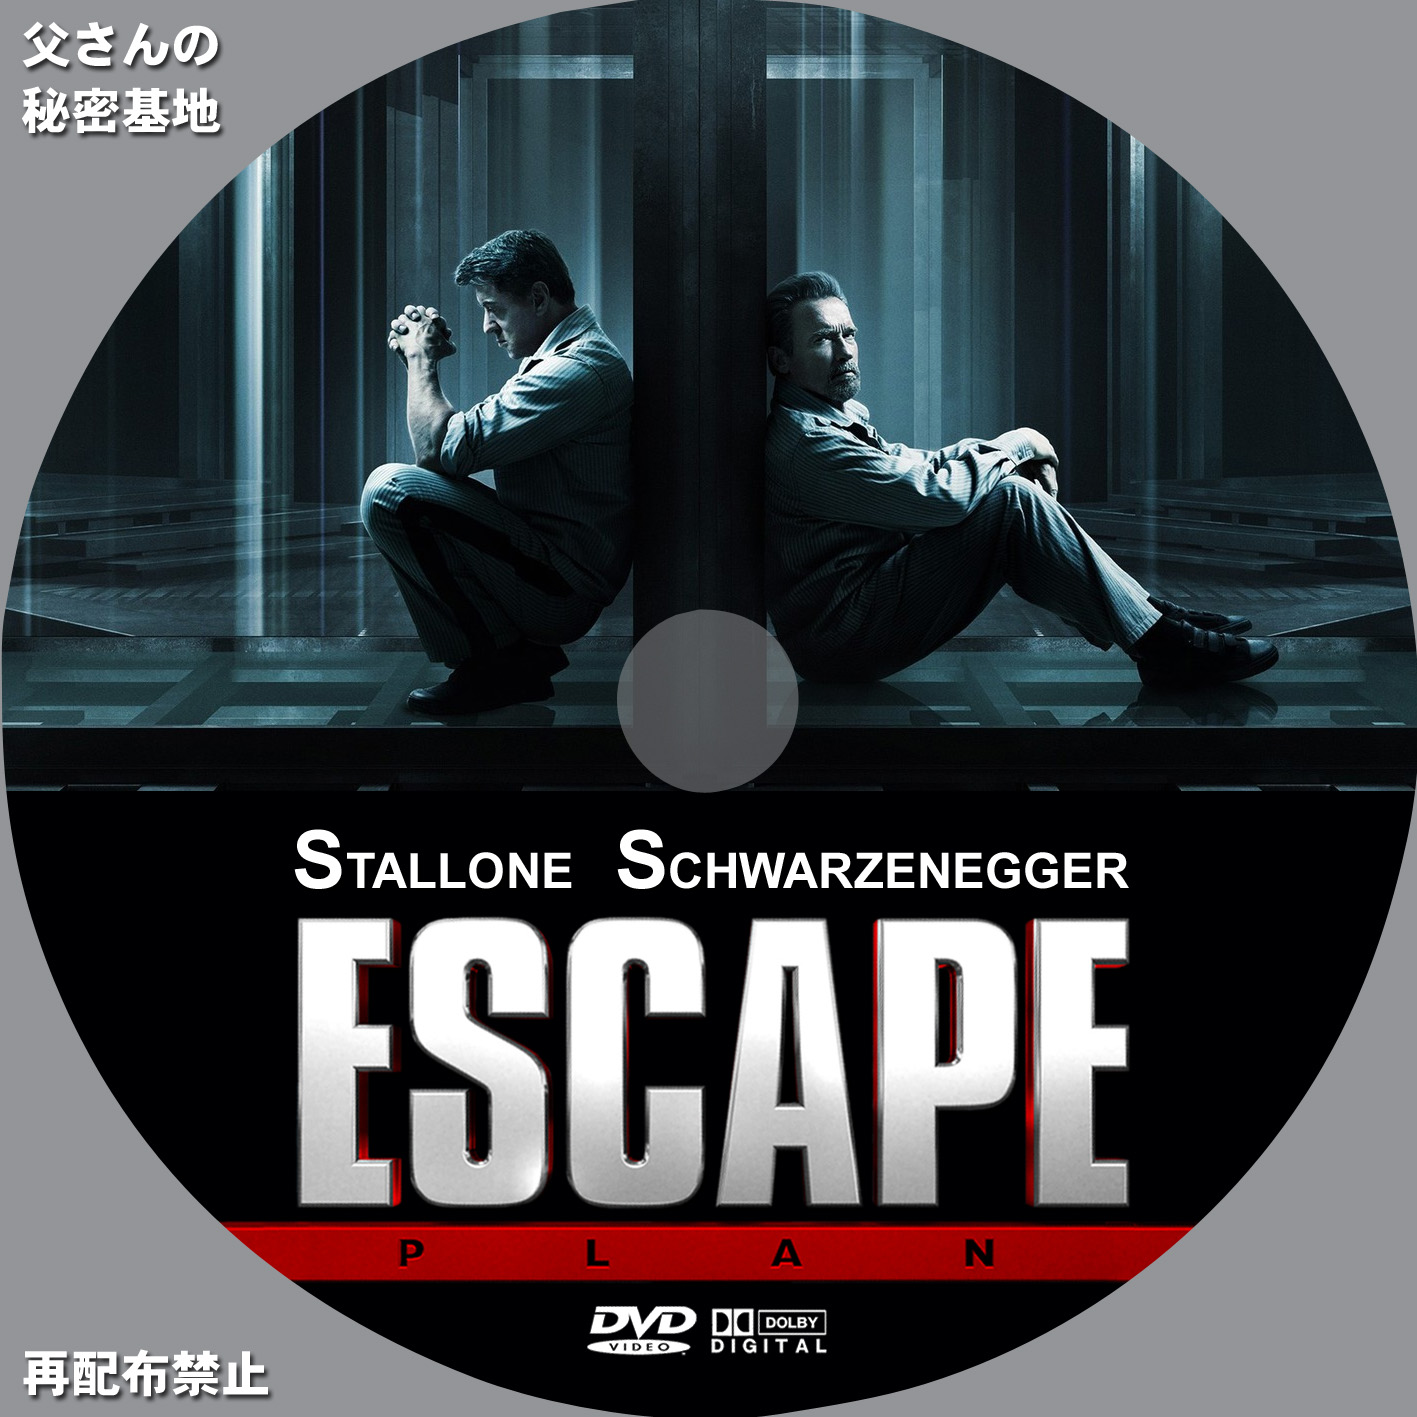 escape_DVD_B.jpg